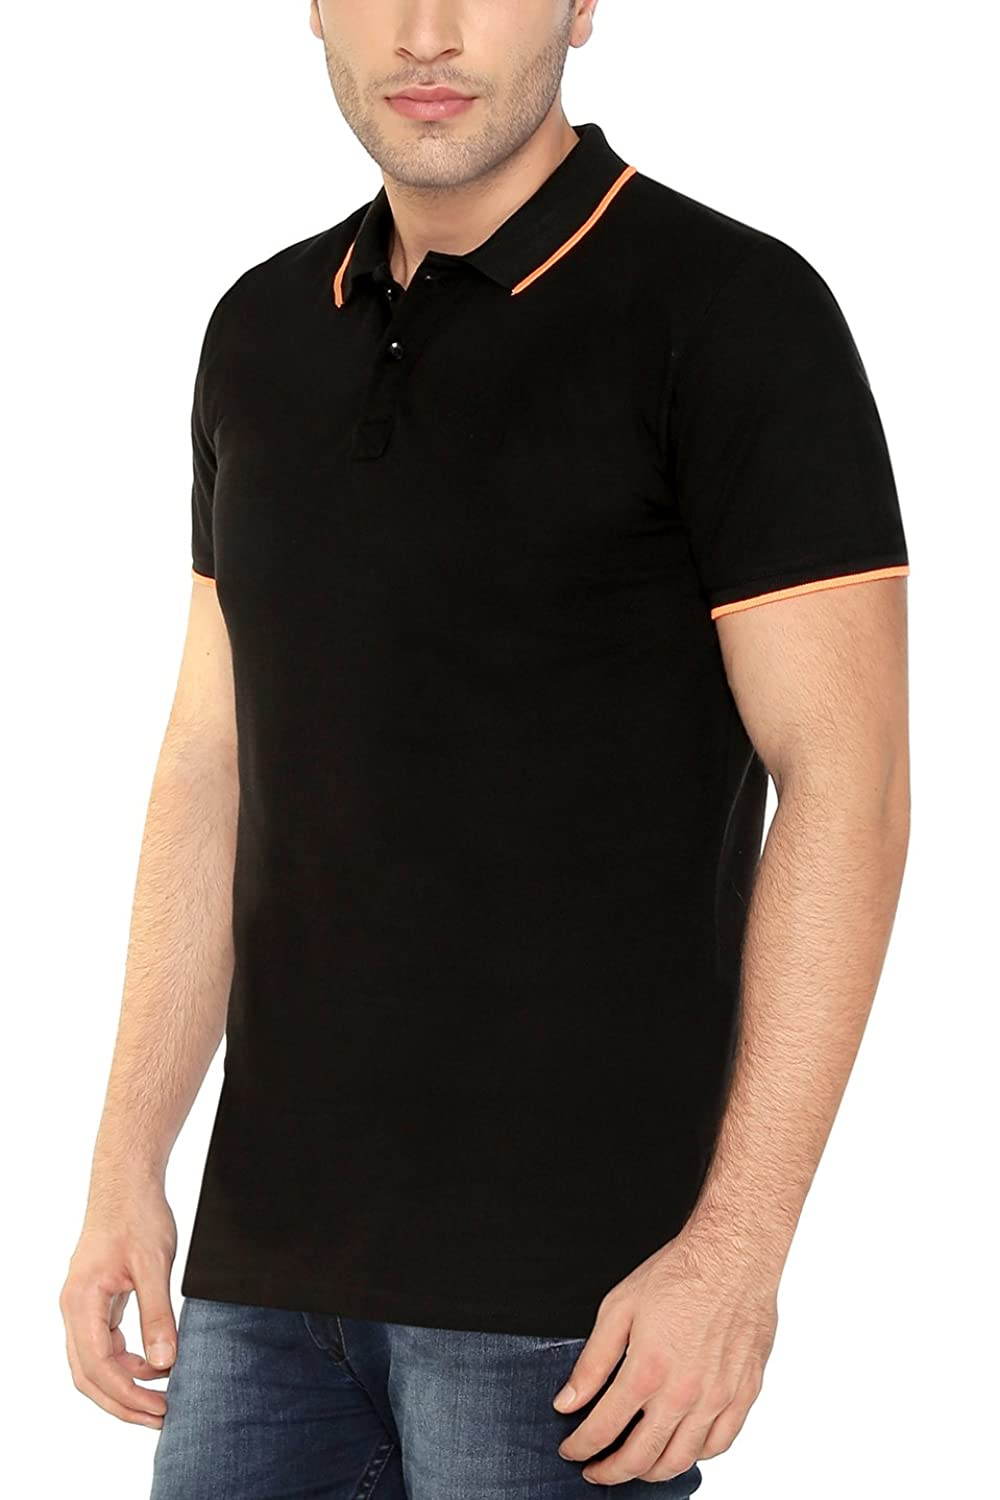 Black t shirt collar - The Cotton Company Men S Contrast Tipped Collar Polo T Shirt Black Amazon In Clothing Accessories